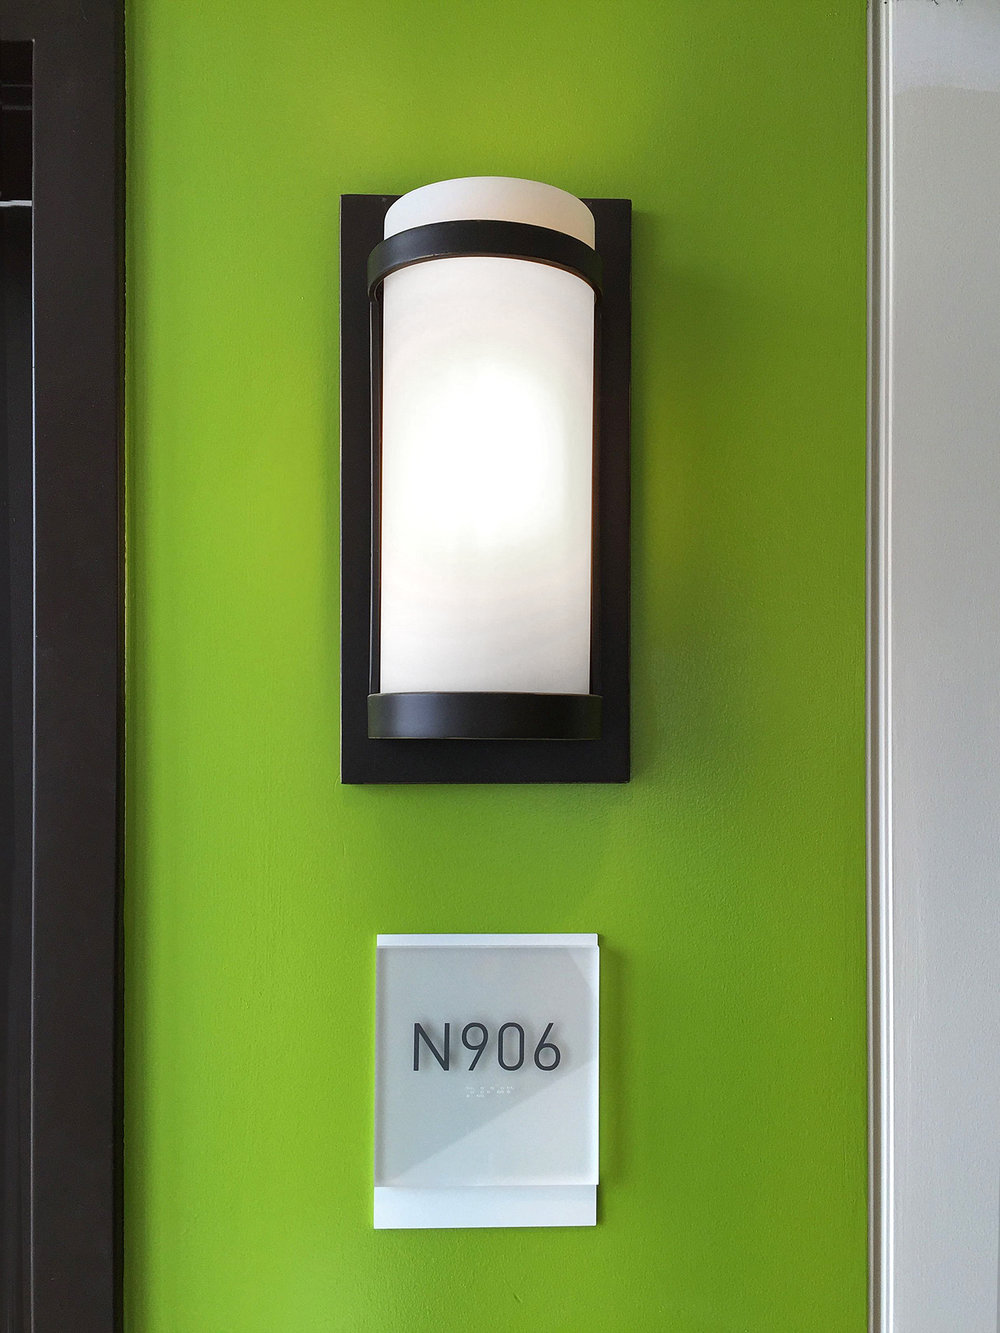 Room Sign & Sconce.jpg